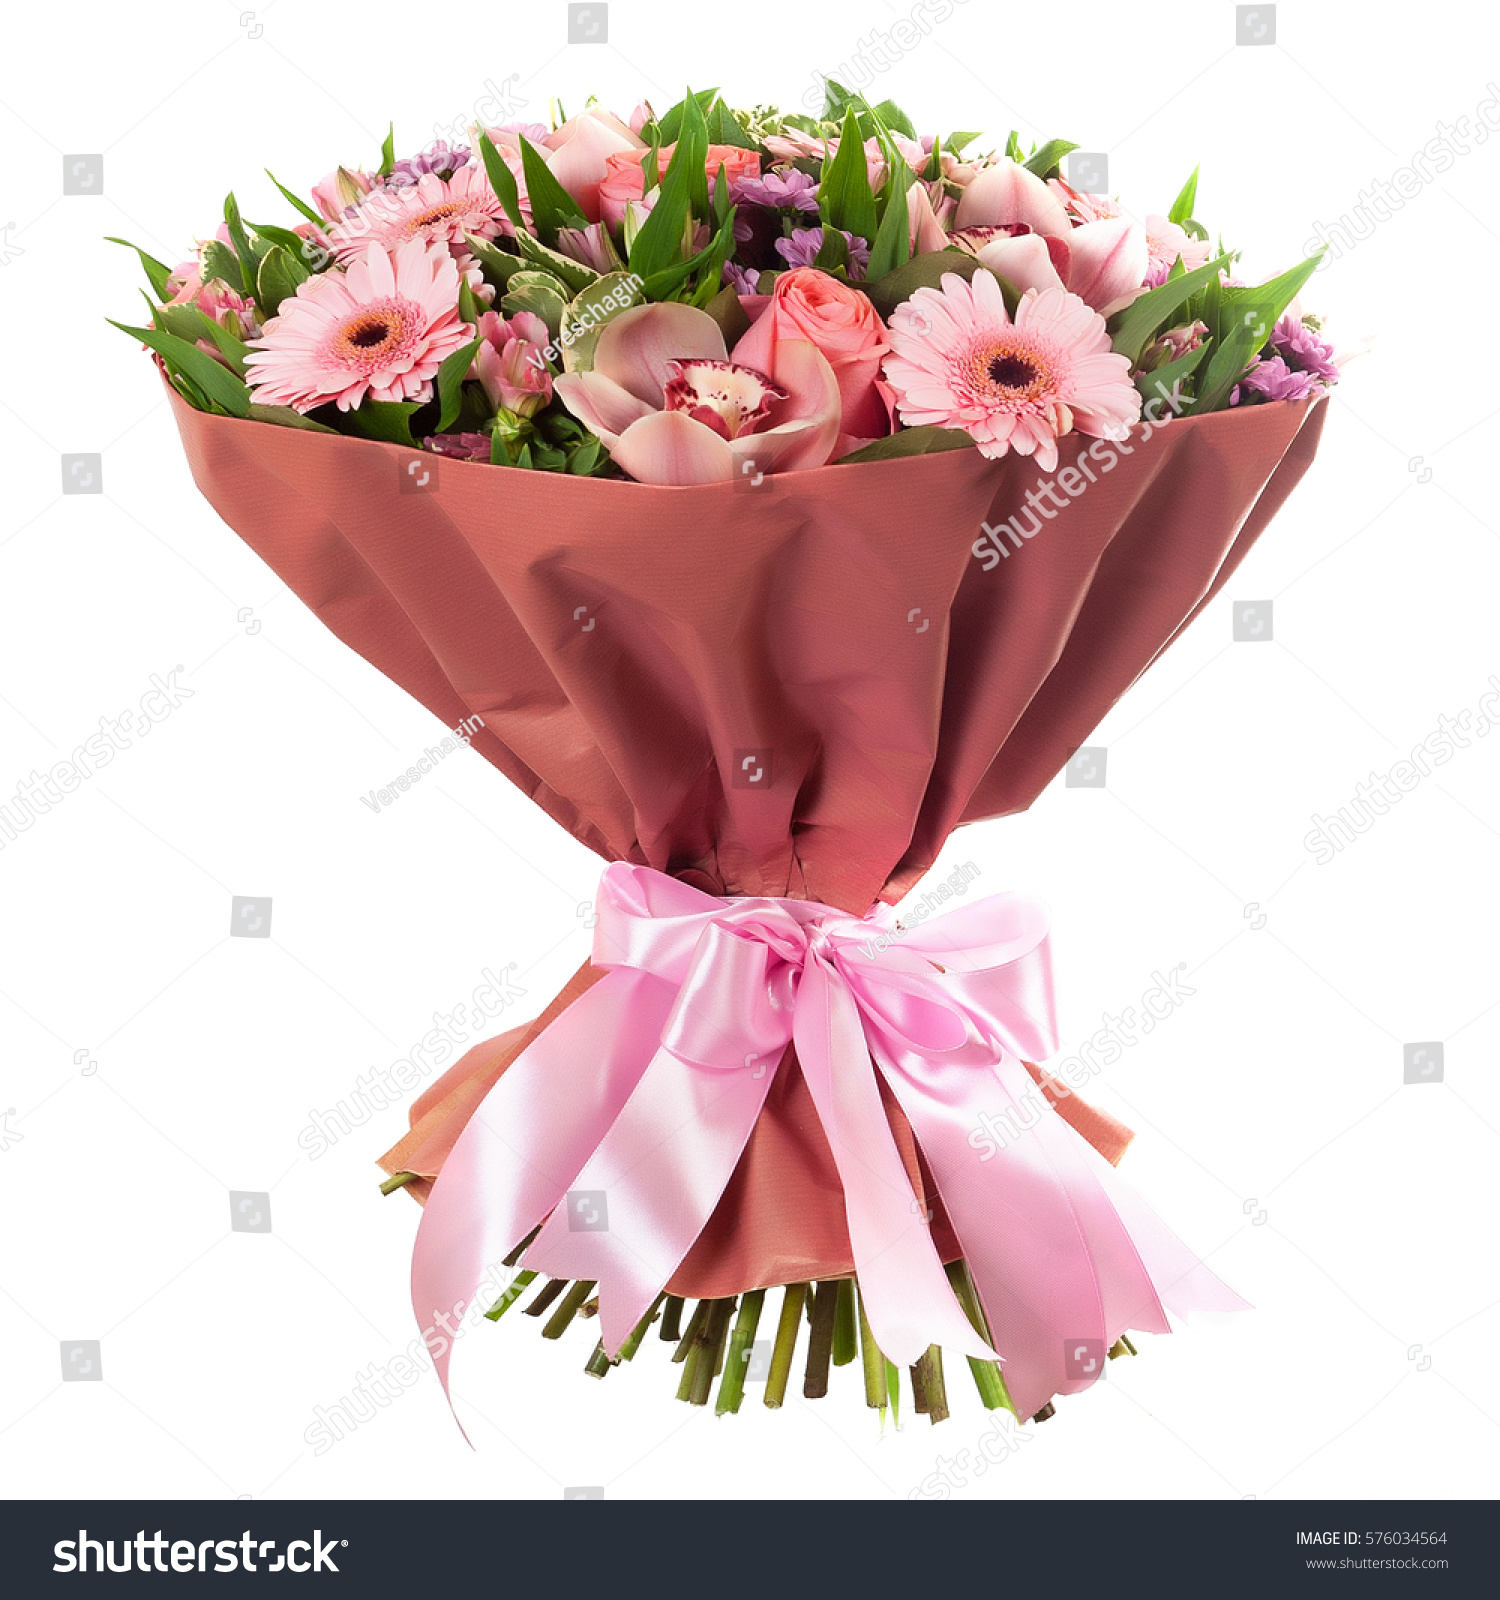 Fresh, lush bouquet of colorful flowers, isolated on white background